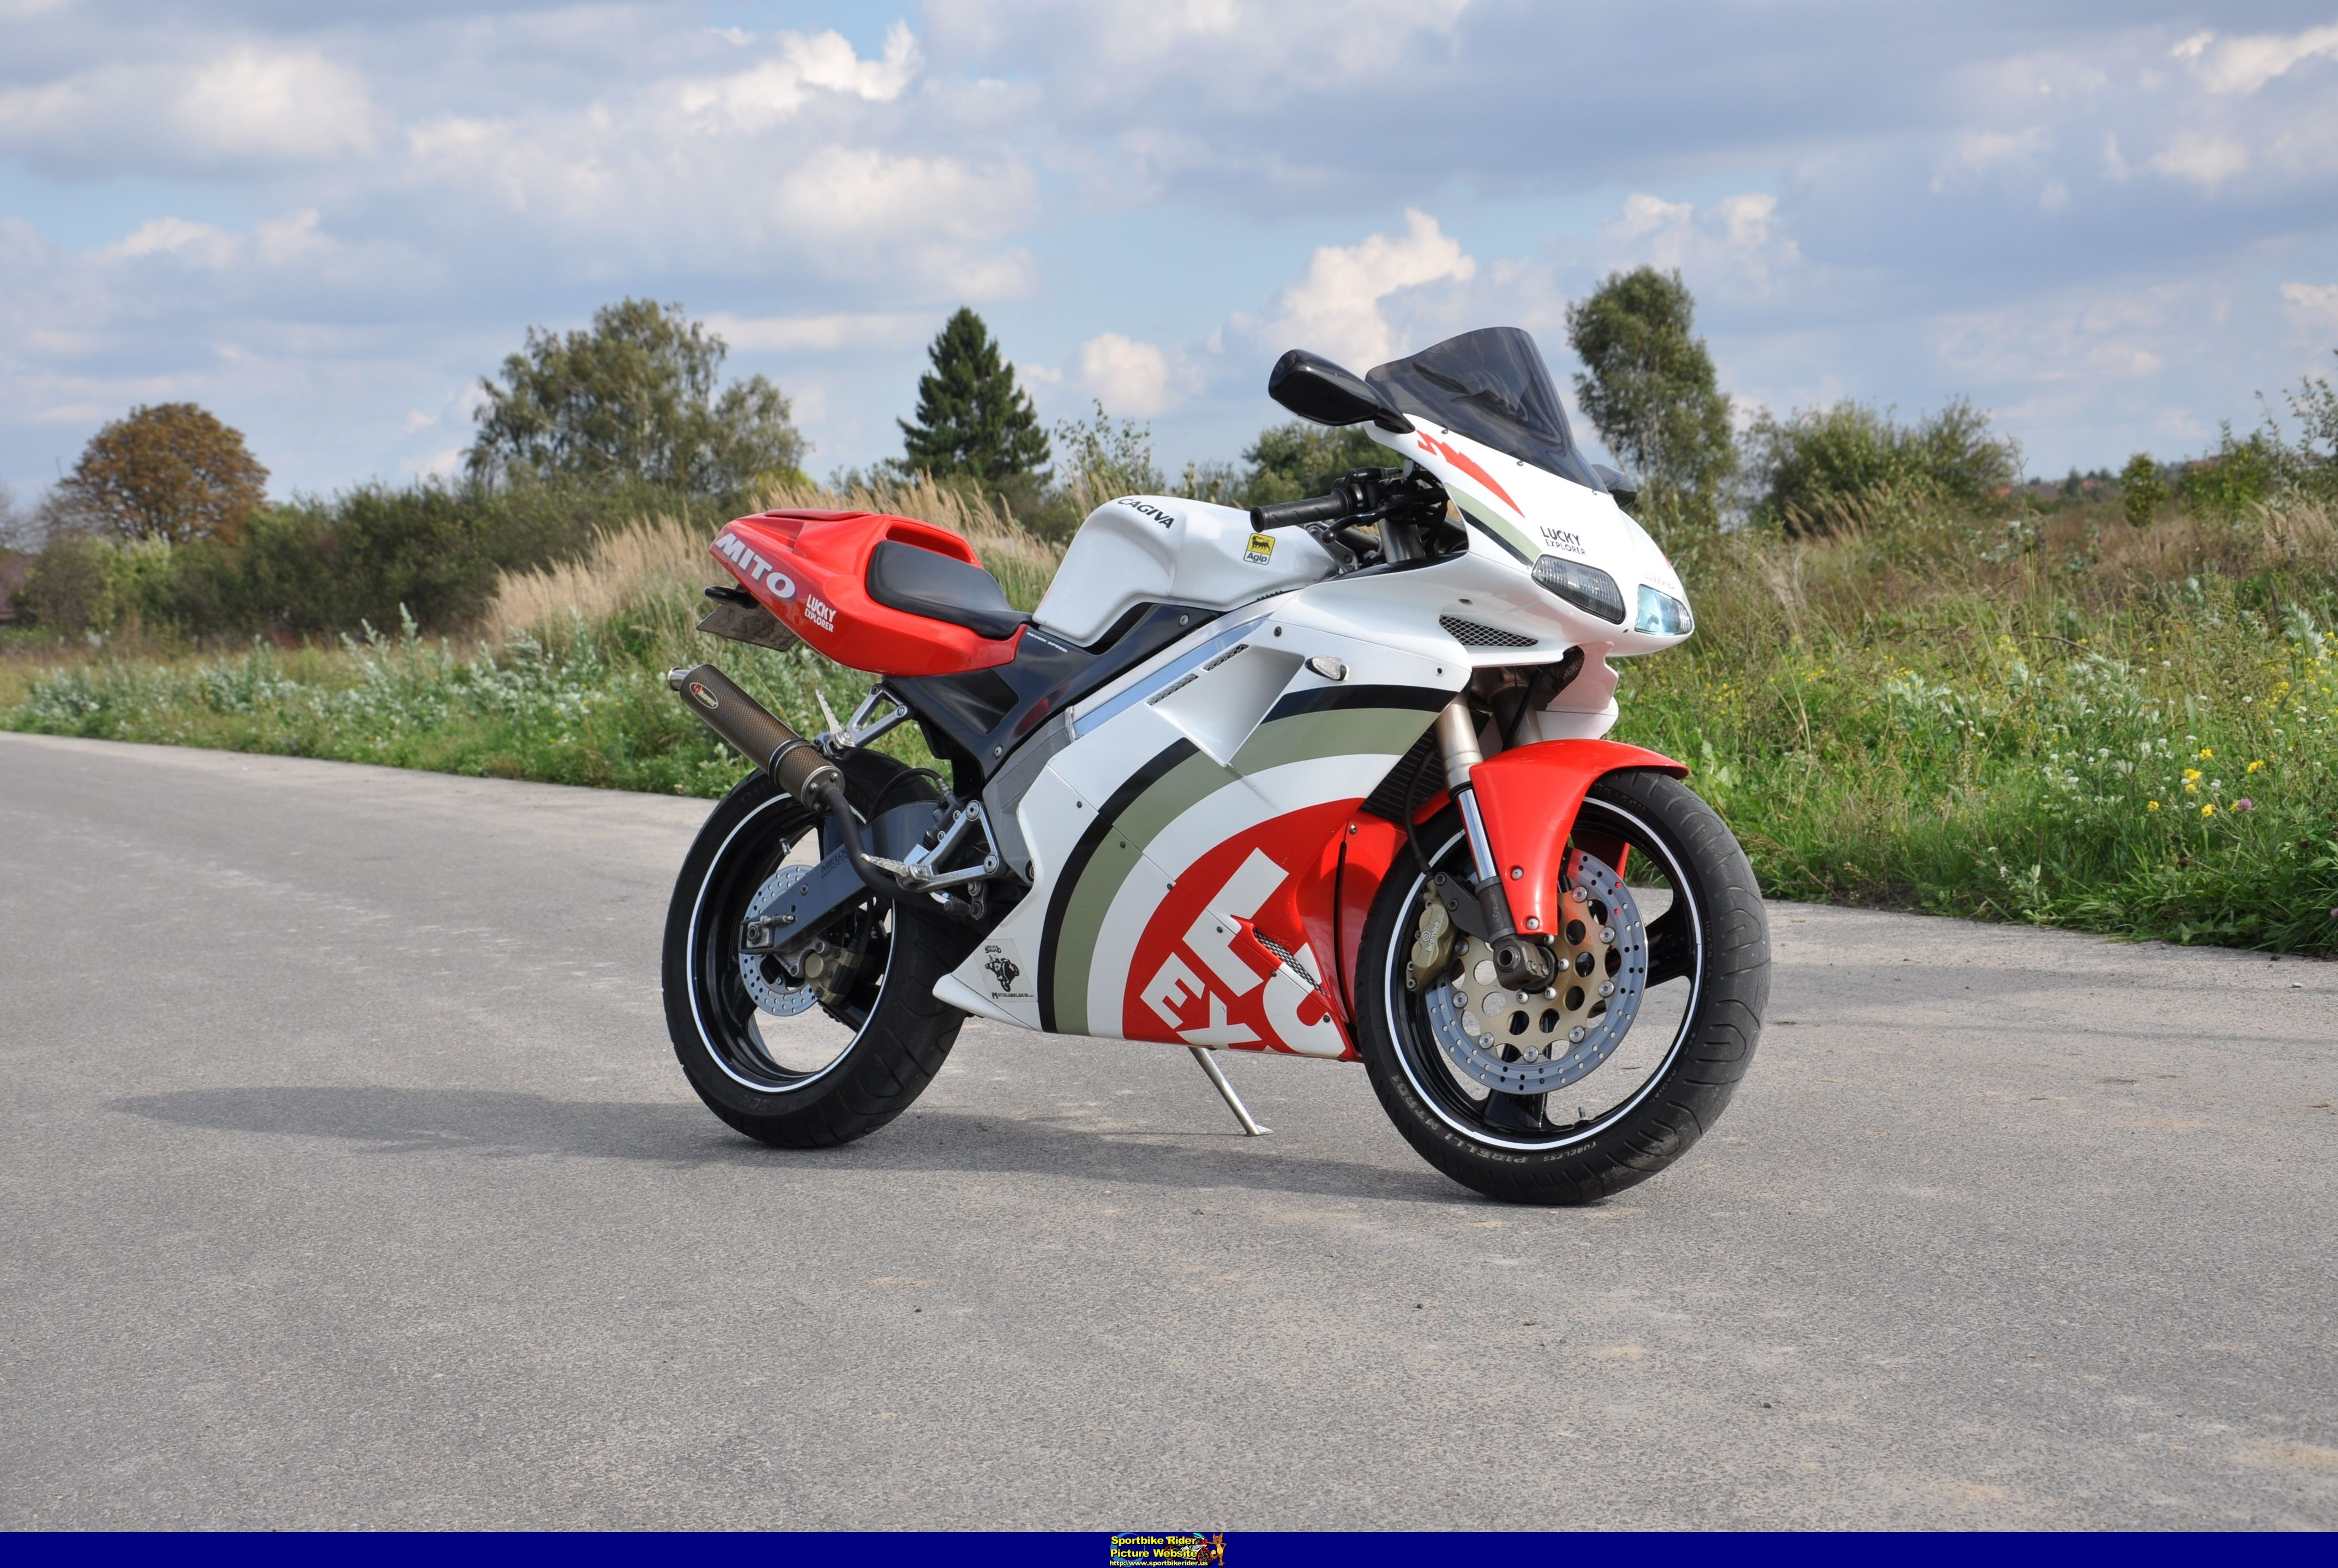 Cagiva W 8 1998 images #67525